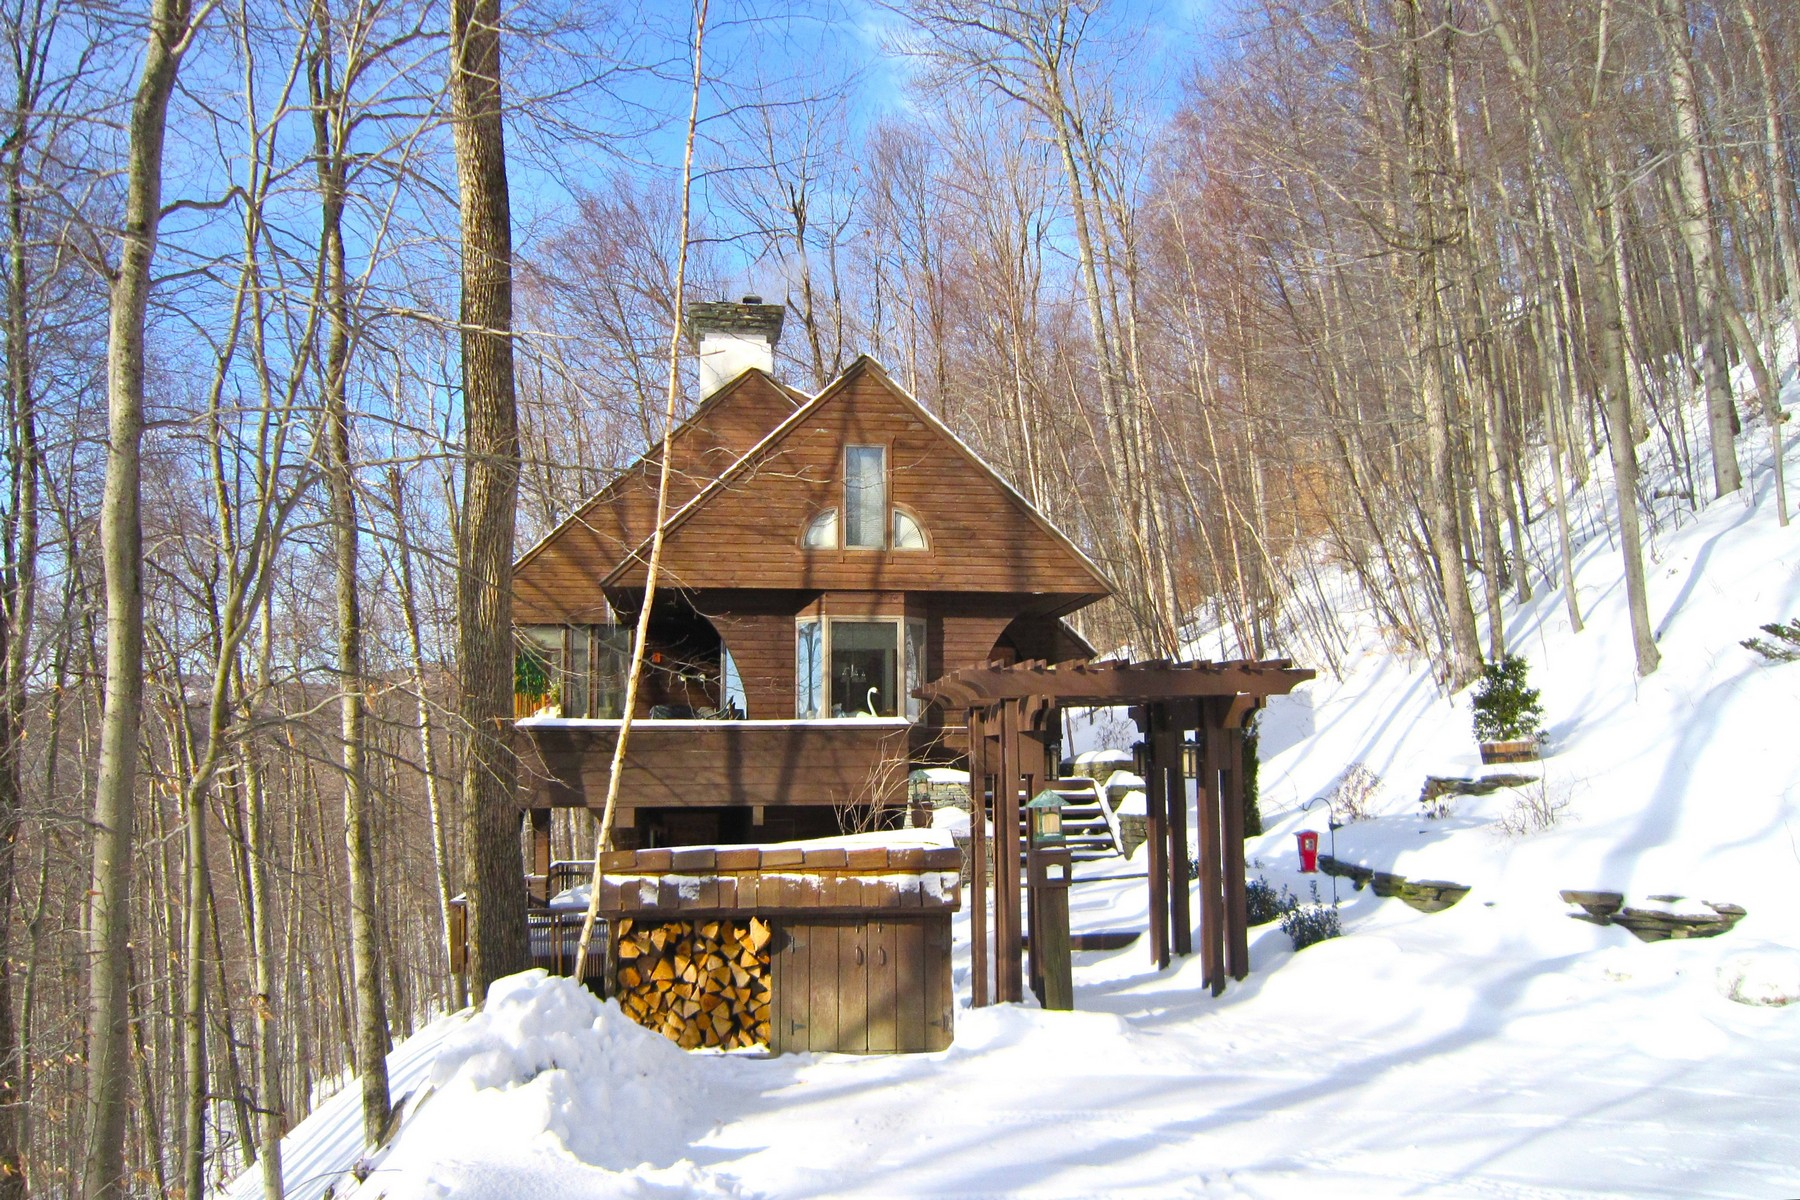 Single Family Home for Sale at Inspiring Views 151 Osprey SA3-49 Plymouth, Vermont, 05056 United States